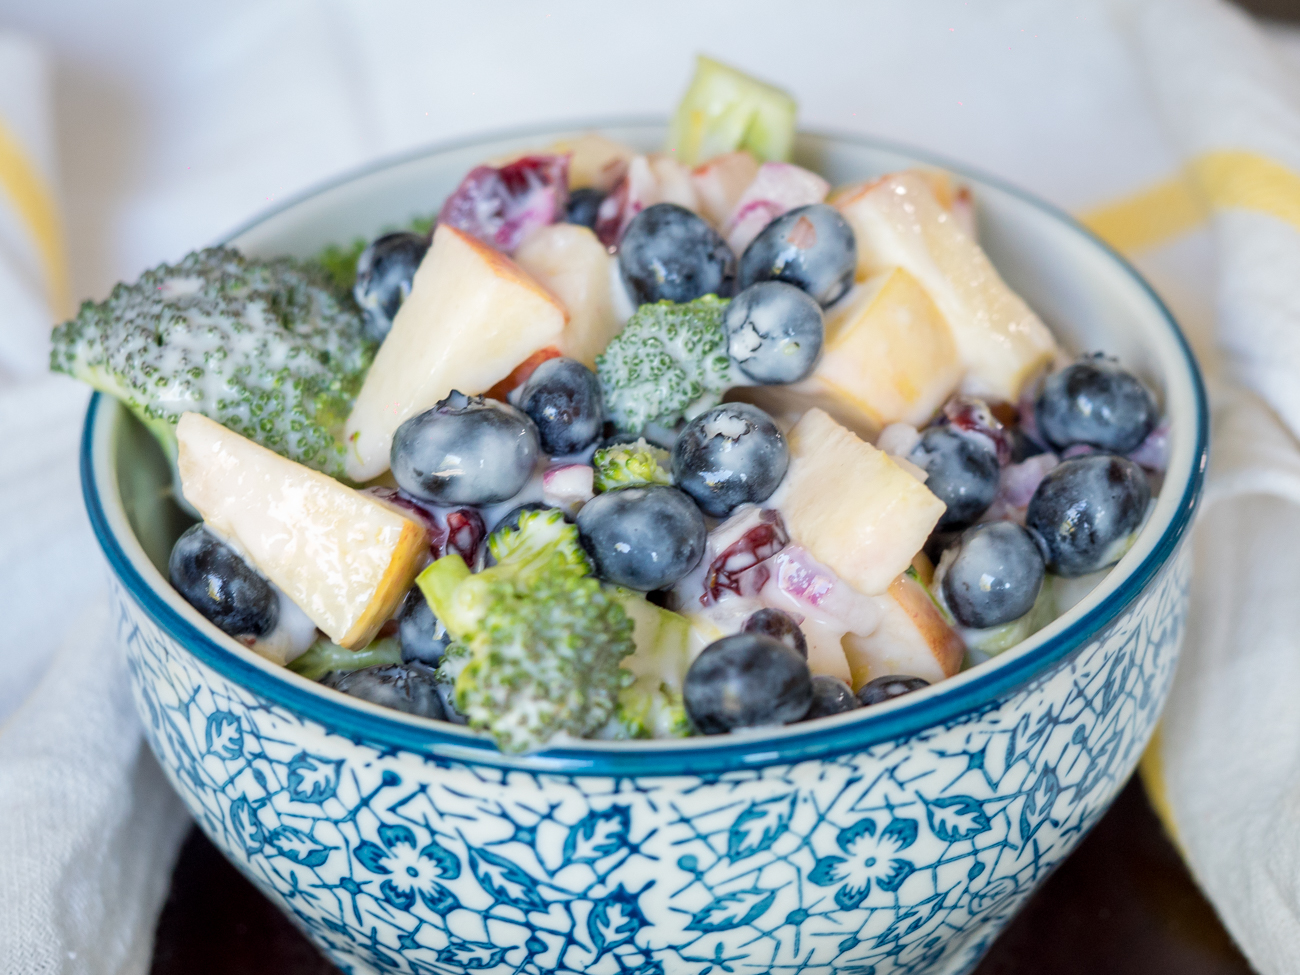 No-Mayo Blueberry Broccoli Salad Vertical 4